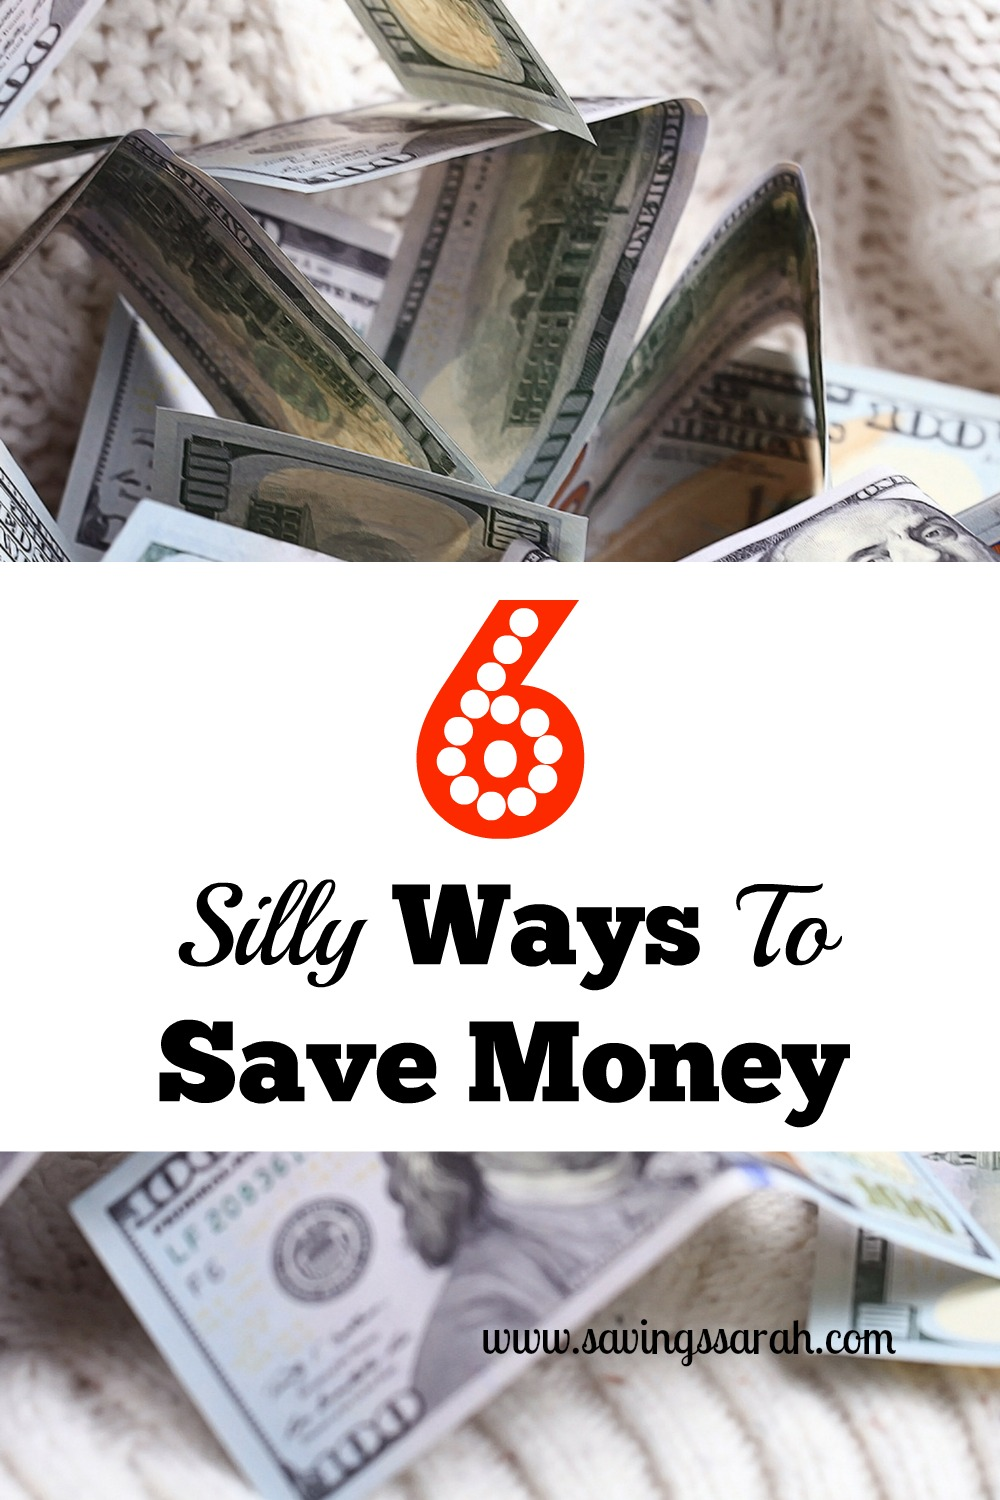 ways of saving money Here are 25 ways to save money that actually work not reuse ziplock bags junk, but strategies that actually save real money.